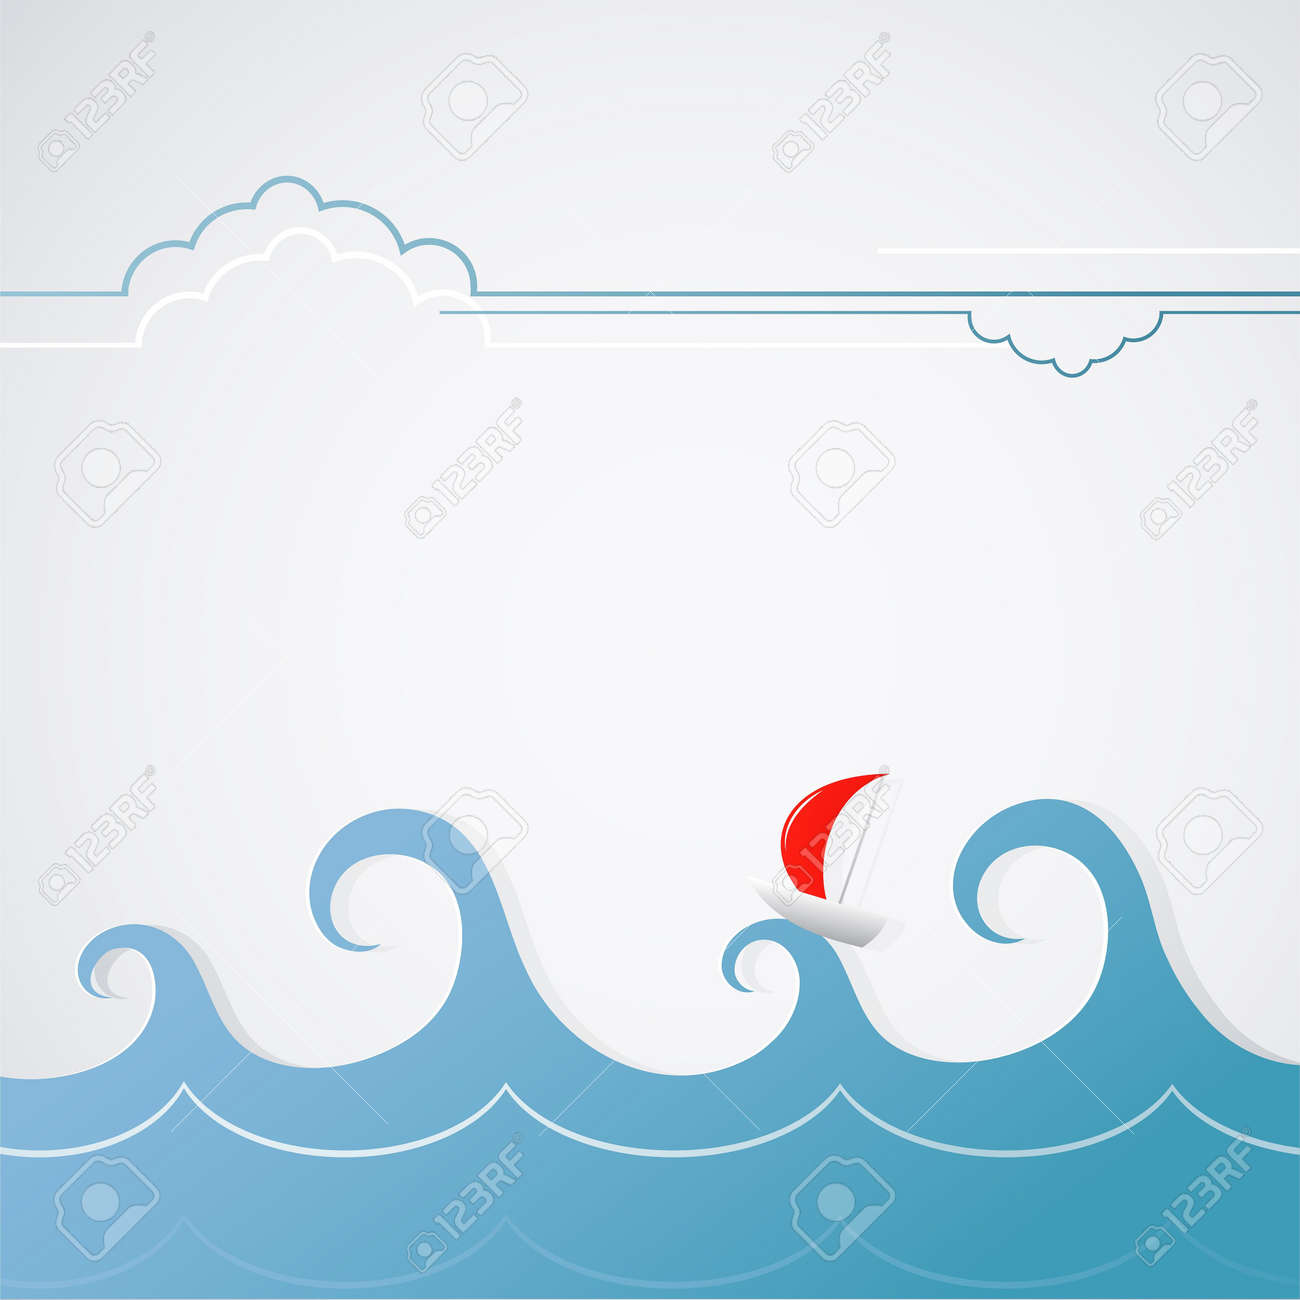 A Yacht With Stormy Waves. Simple Graphic Illustration Royalty ...